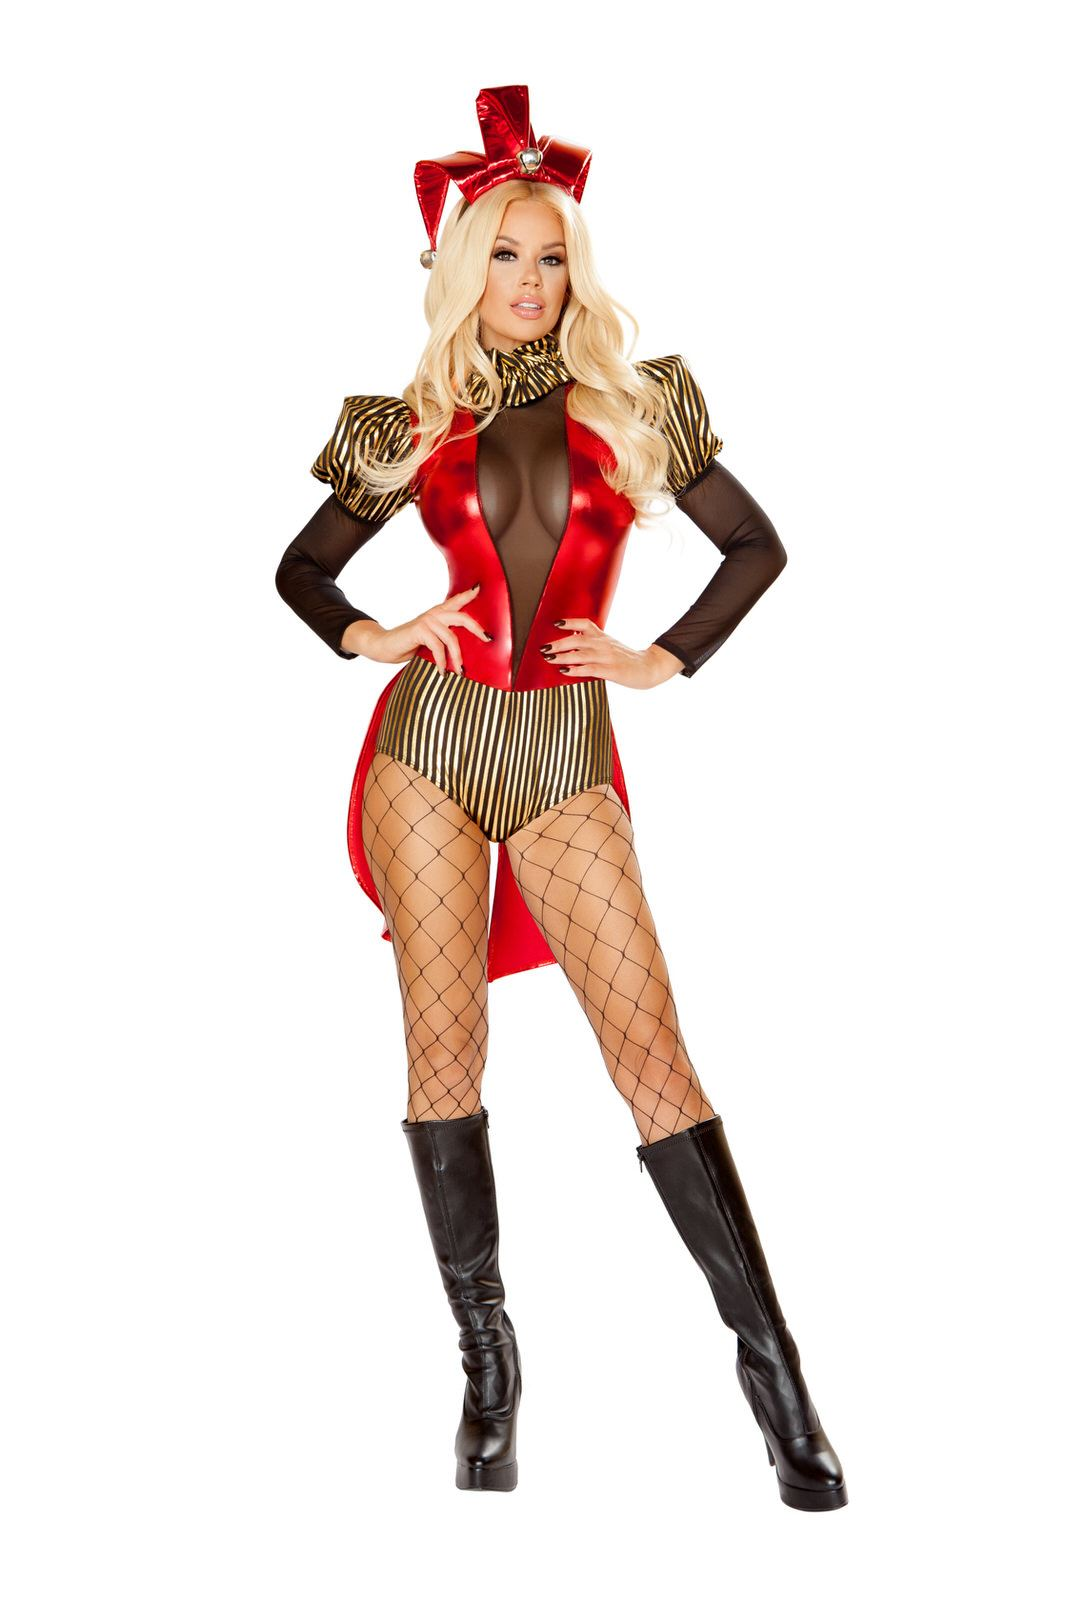 Adult Rascal Jester Woman Costume ...  sc 1 st  The Costume Land & Adult Rascal Jester Woman Costume | $60.99 | The Costume Land